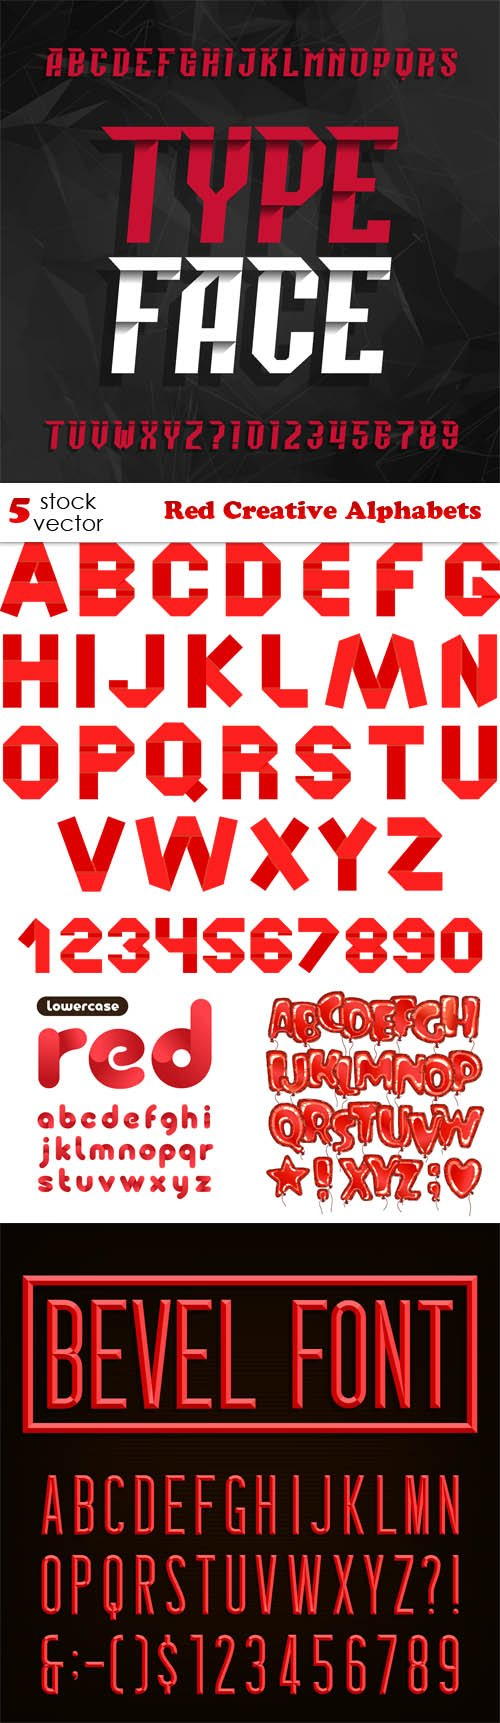 Vectors - Red Creative Alphabets